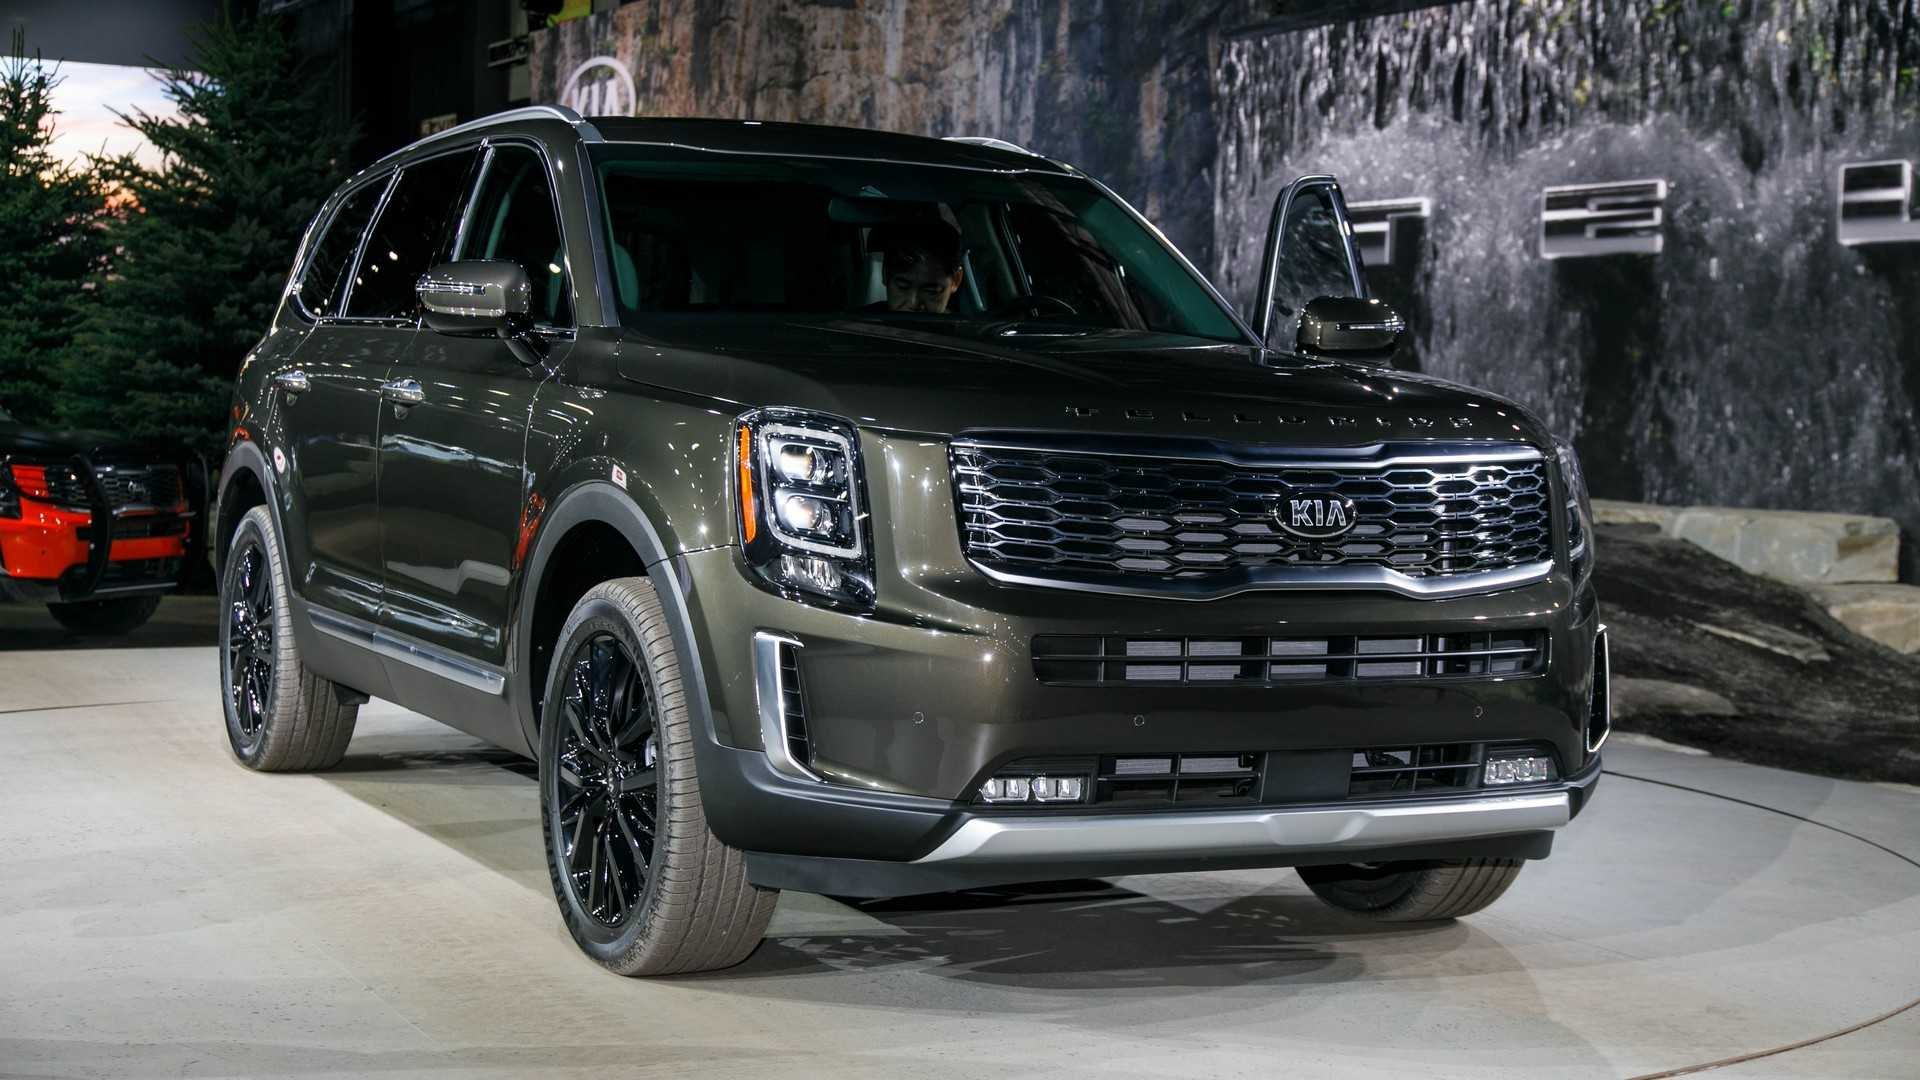 96 New Kia Telluride 2020 For Sale 2 Picture